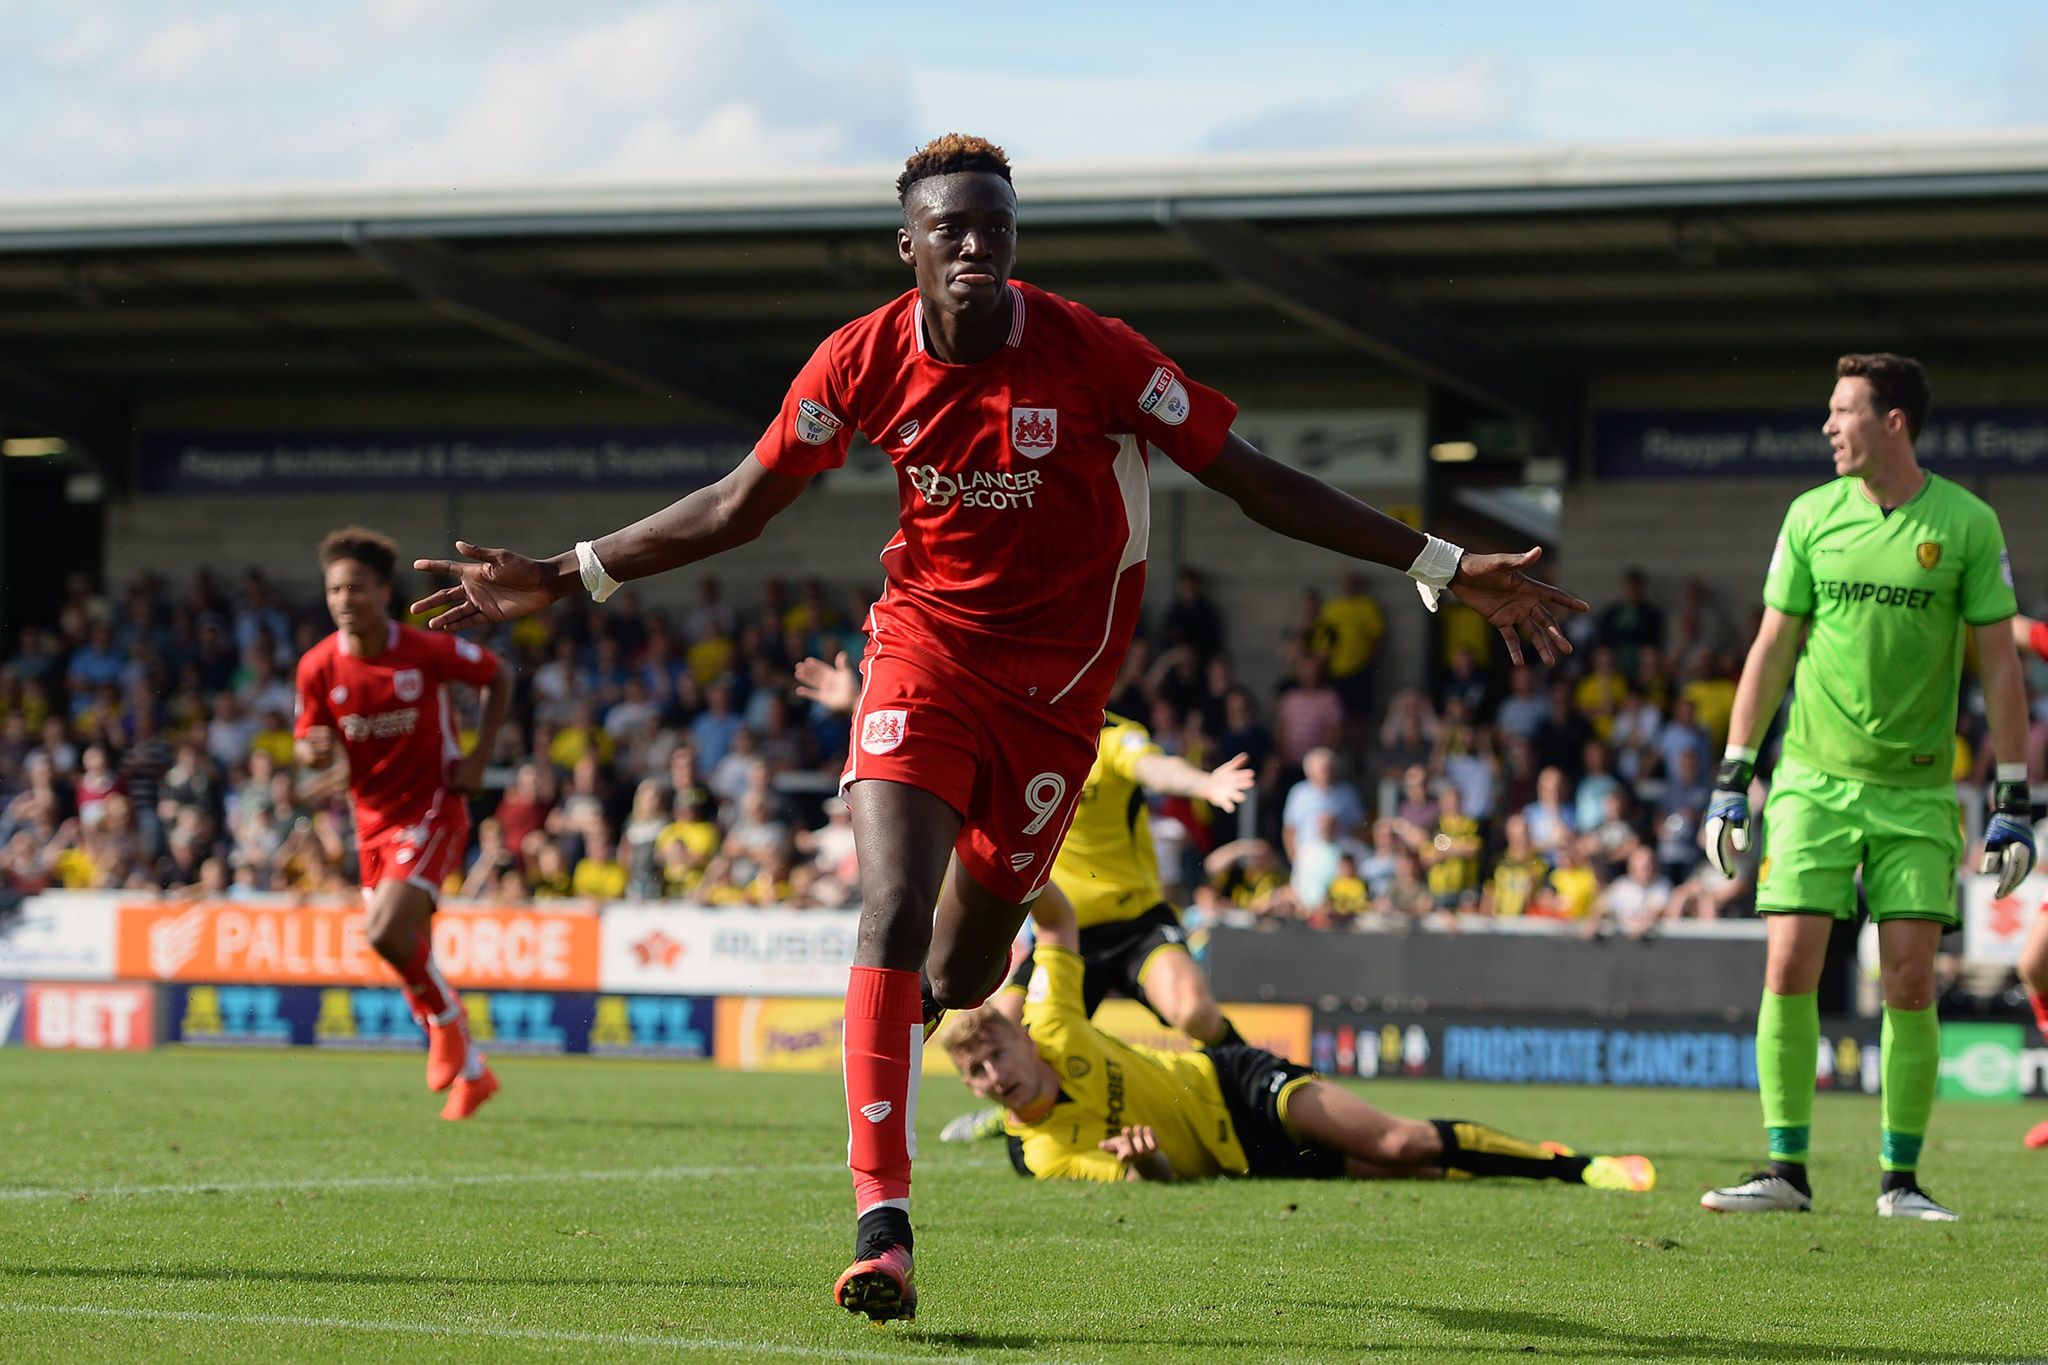 Abraham wheels away in celebration after scoring a goal for Bristol City. Image: PA